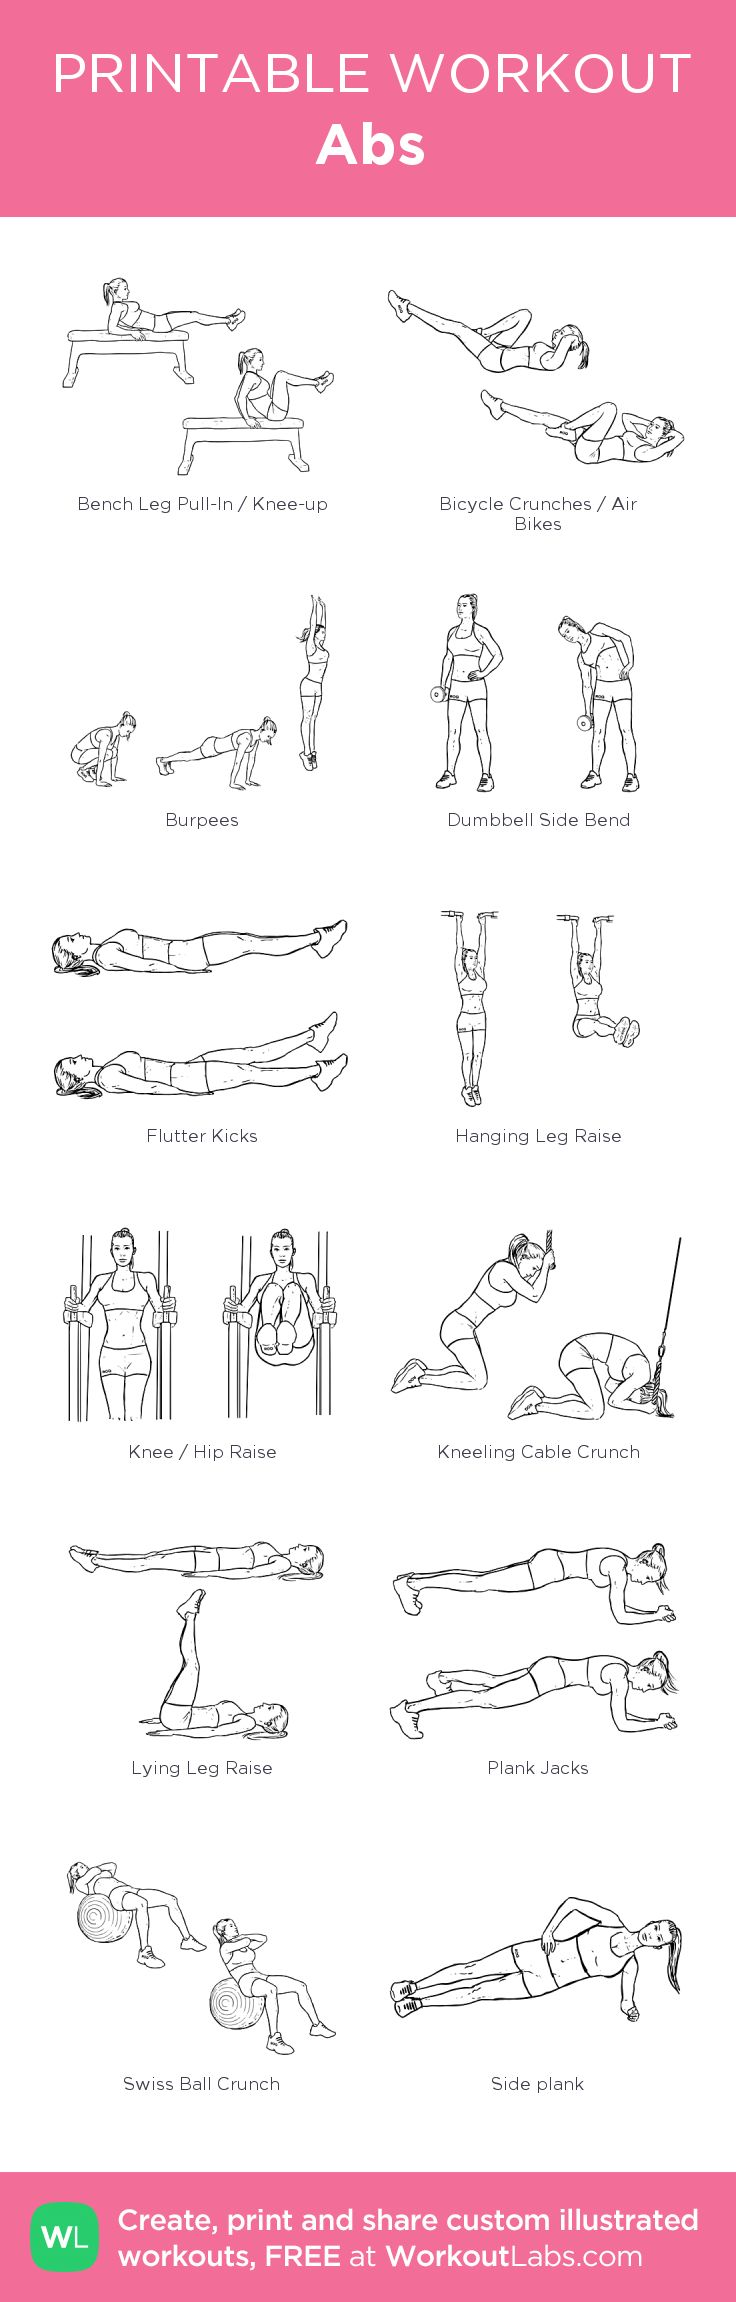 Abs: my custom printable workout by @WorkoutLabs #workoutlabs #customworkout